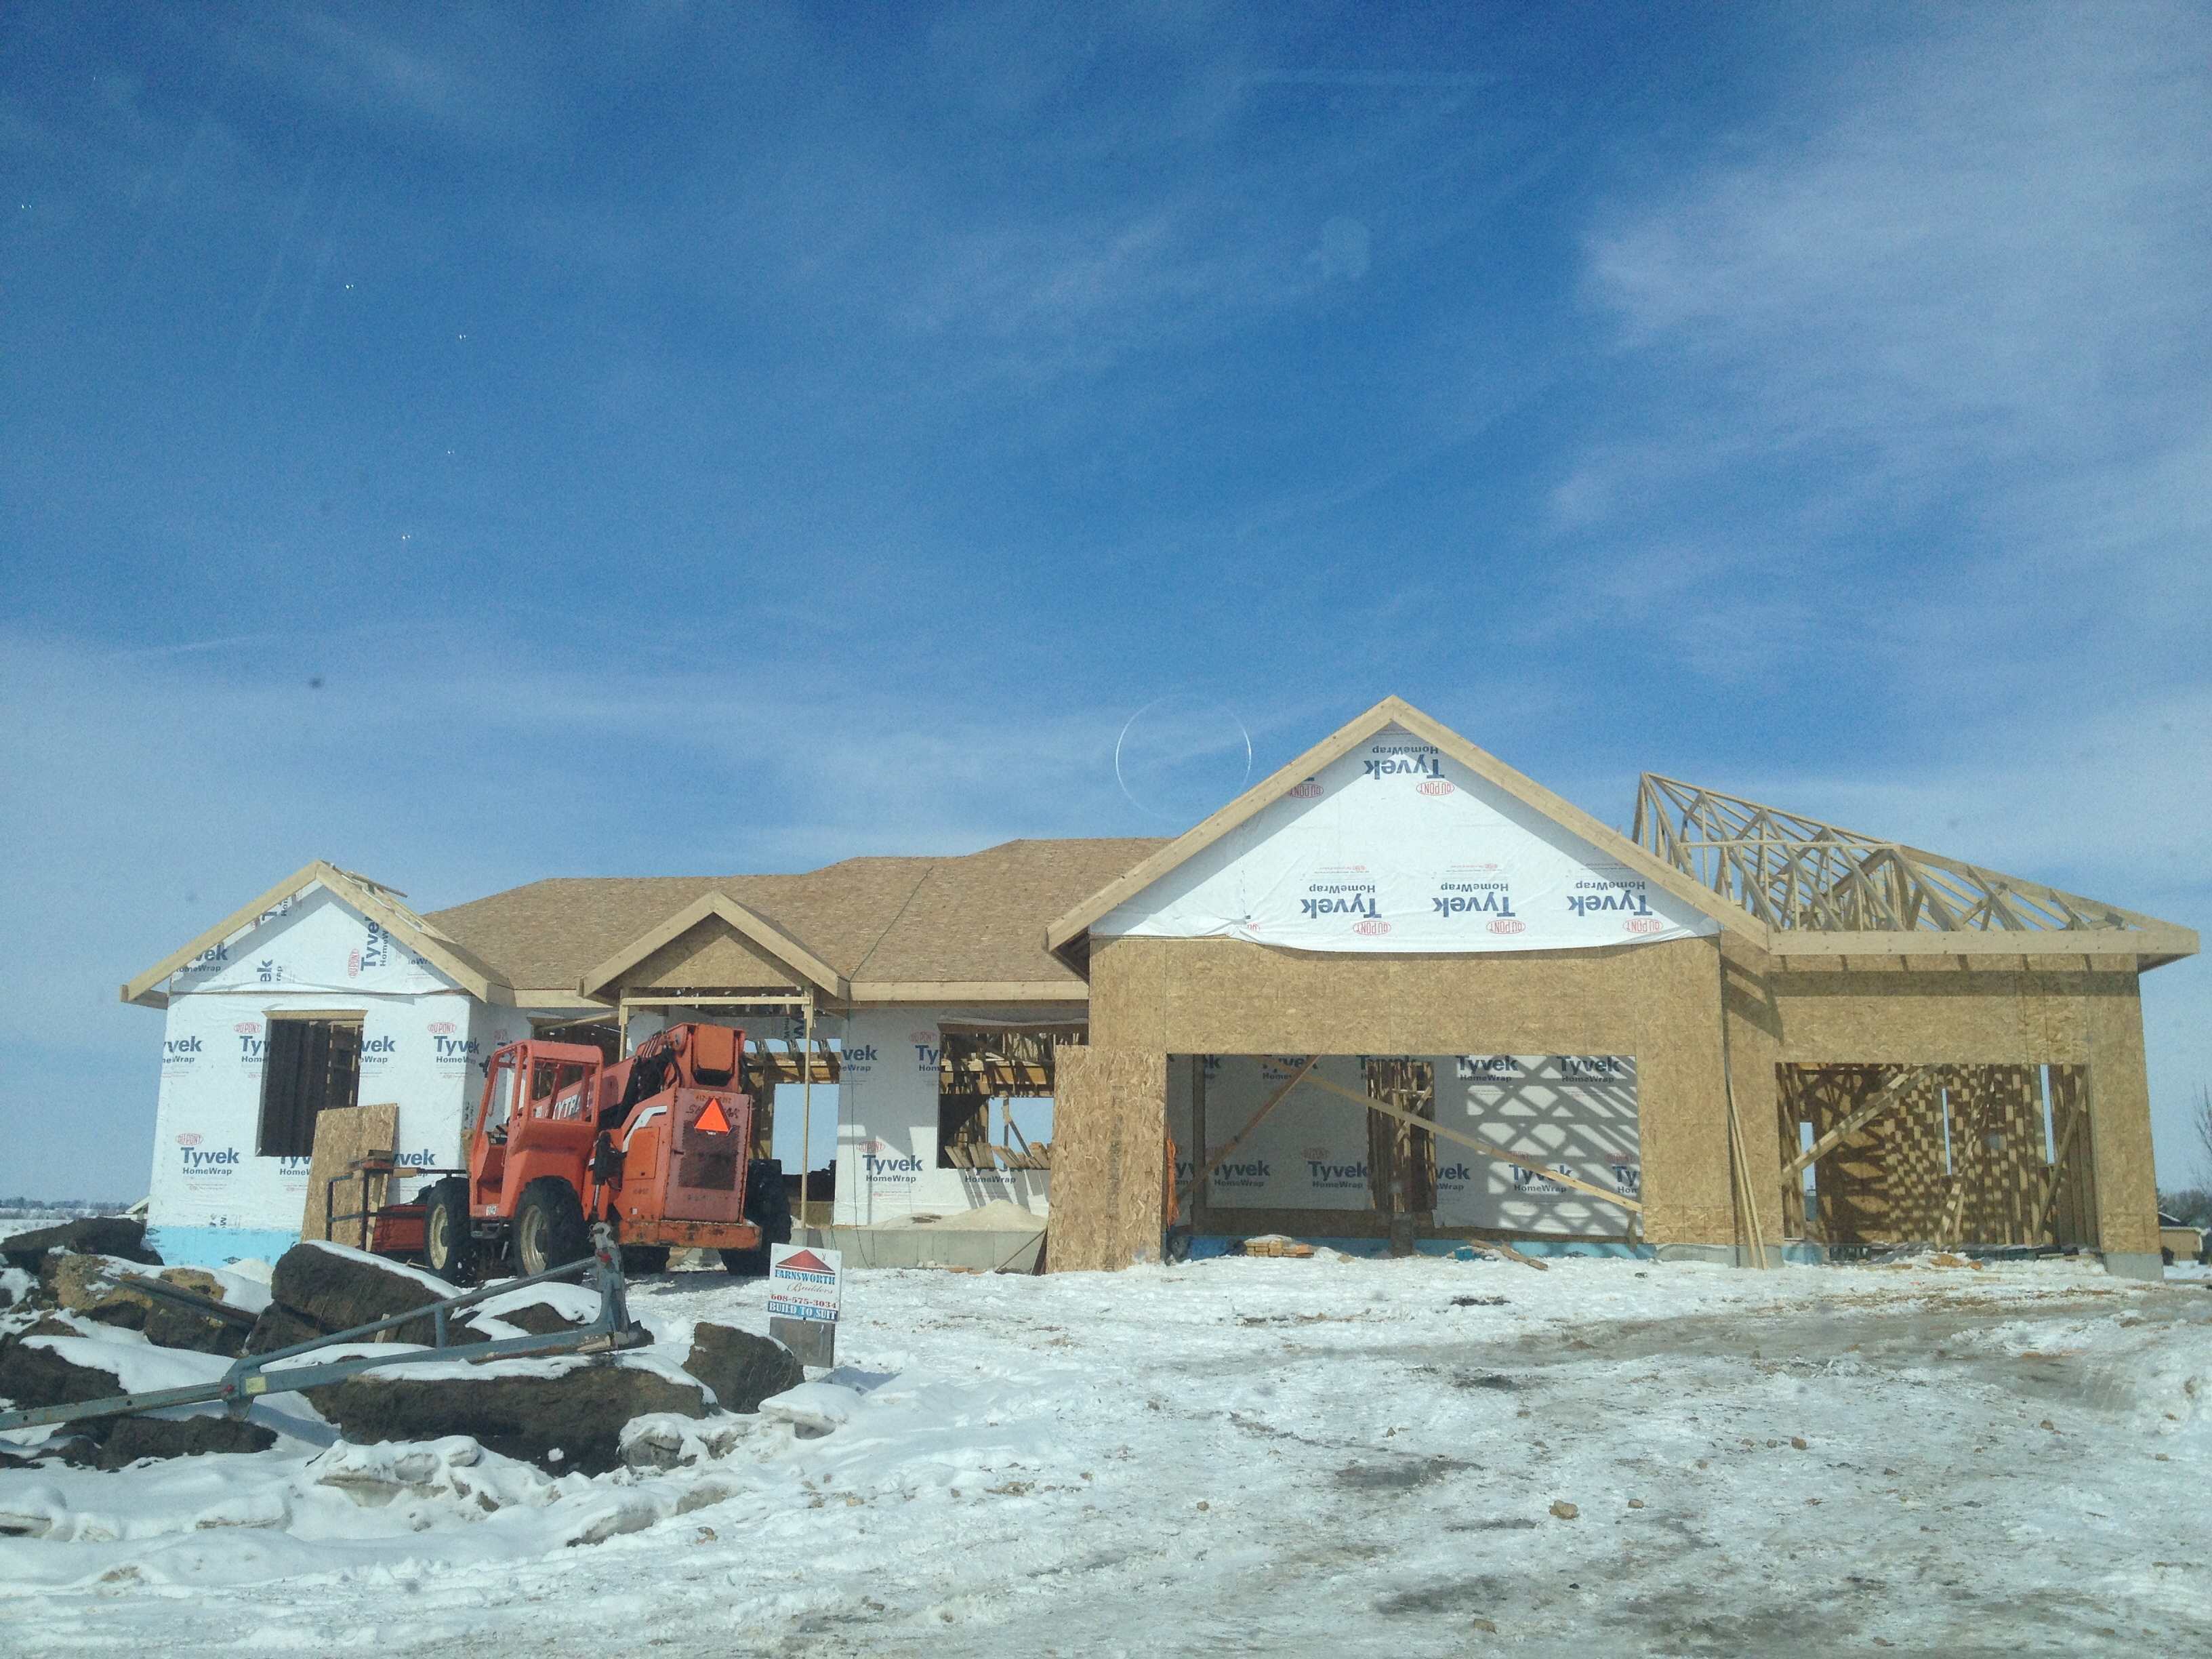 Work on the Parade of Homes begins in winter